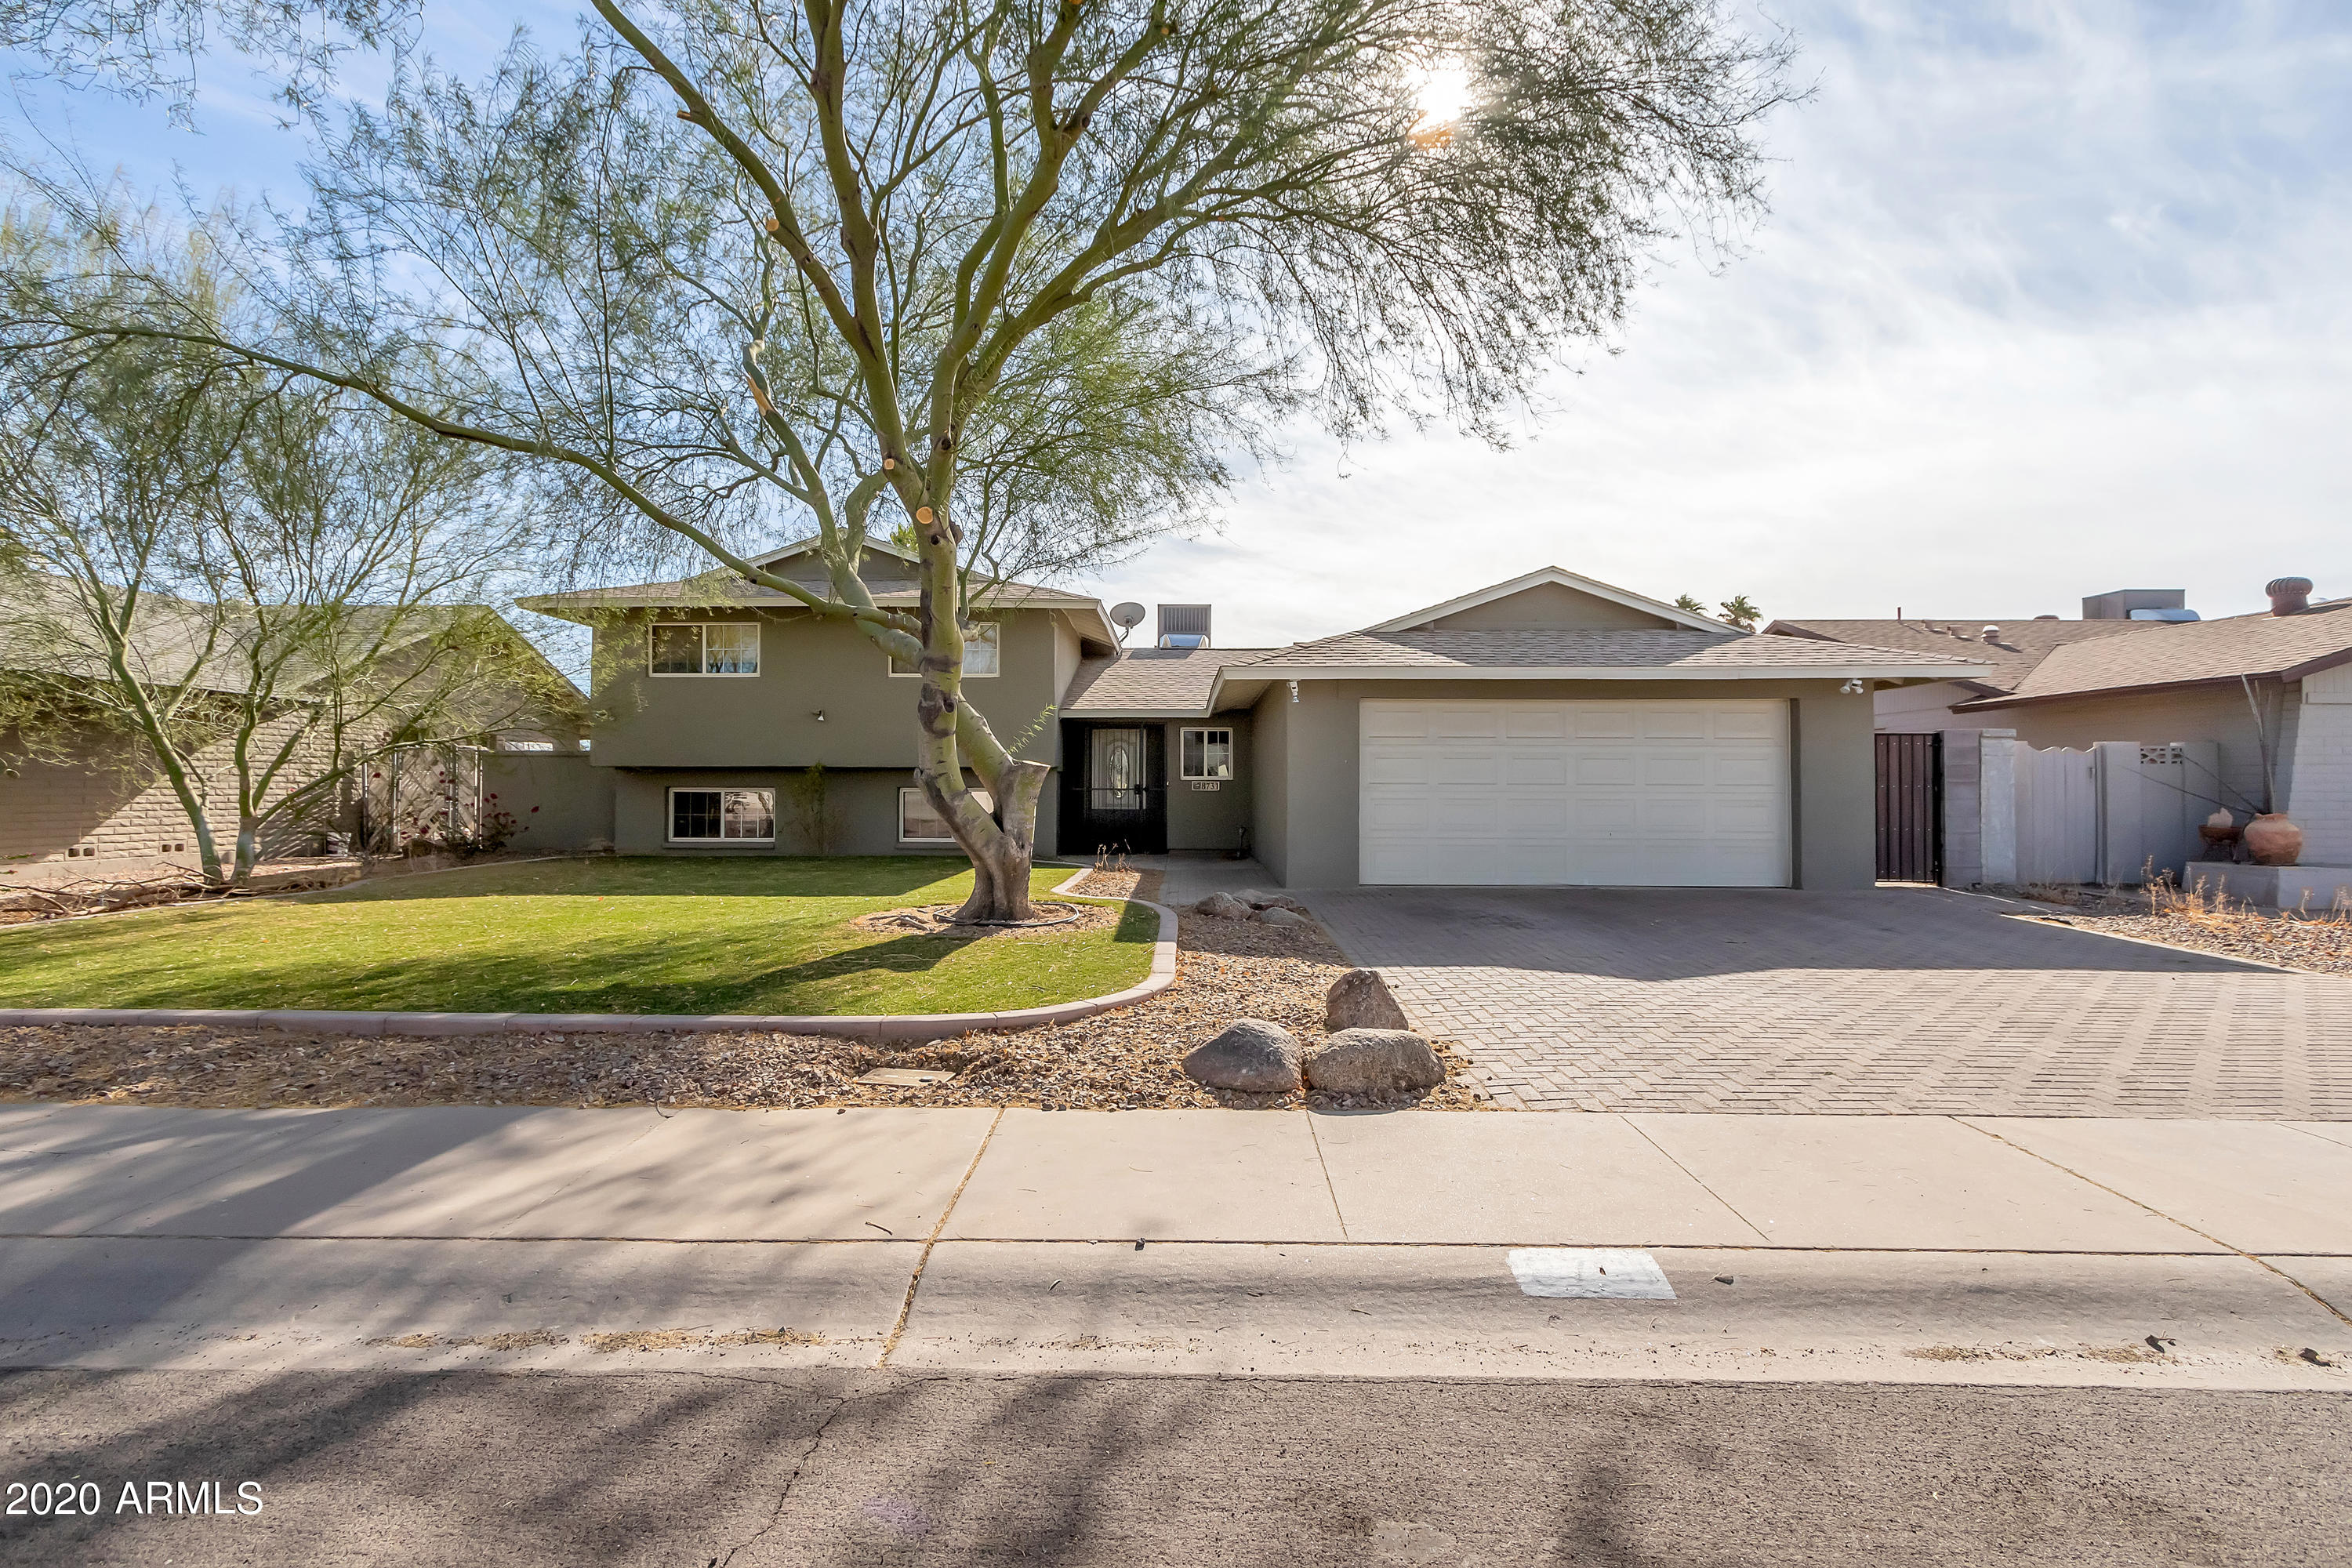 Great family home on a cul-de-sac street, and this popular Hallcraft floor plan is well maintained and rent includes pool and yard maintenance.  It is located in a very desirable Scottsdale location as 87th street is two streets in from Pima Rd in a very quiet circle of homes, and low traffic area and convenient to loop 101 & downtown Scottsdale.  It also features den/office and lots of additional closet/storage space.  Two car garage.